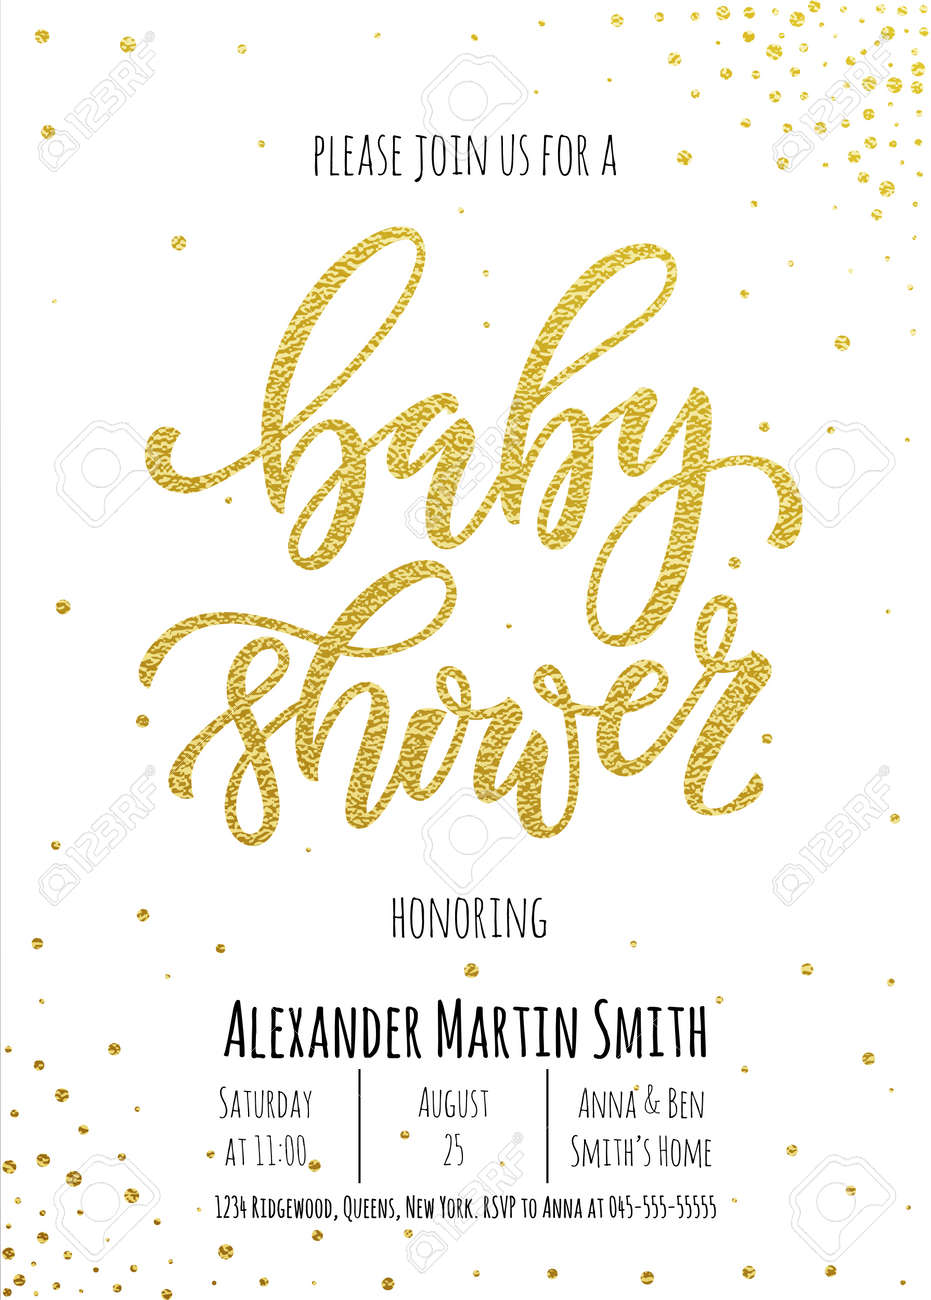 Baby shower invitation card template classic golden calligraphy baby shower invitation card template classic golden calligraphy vector lettering white background with gold filmwisefo